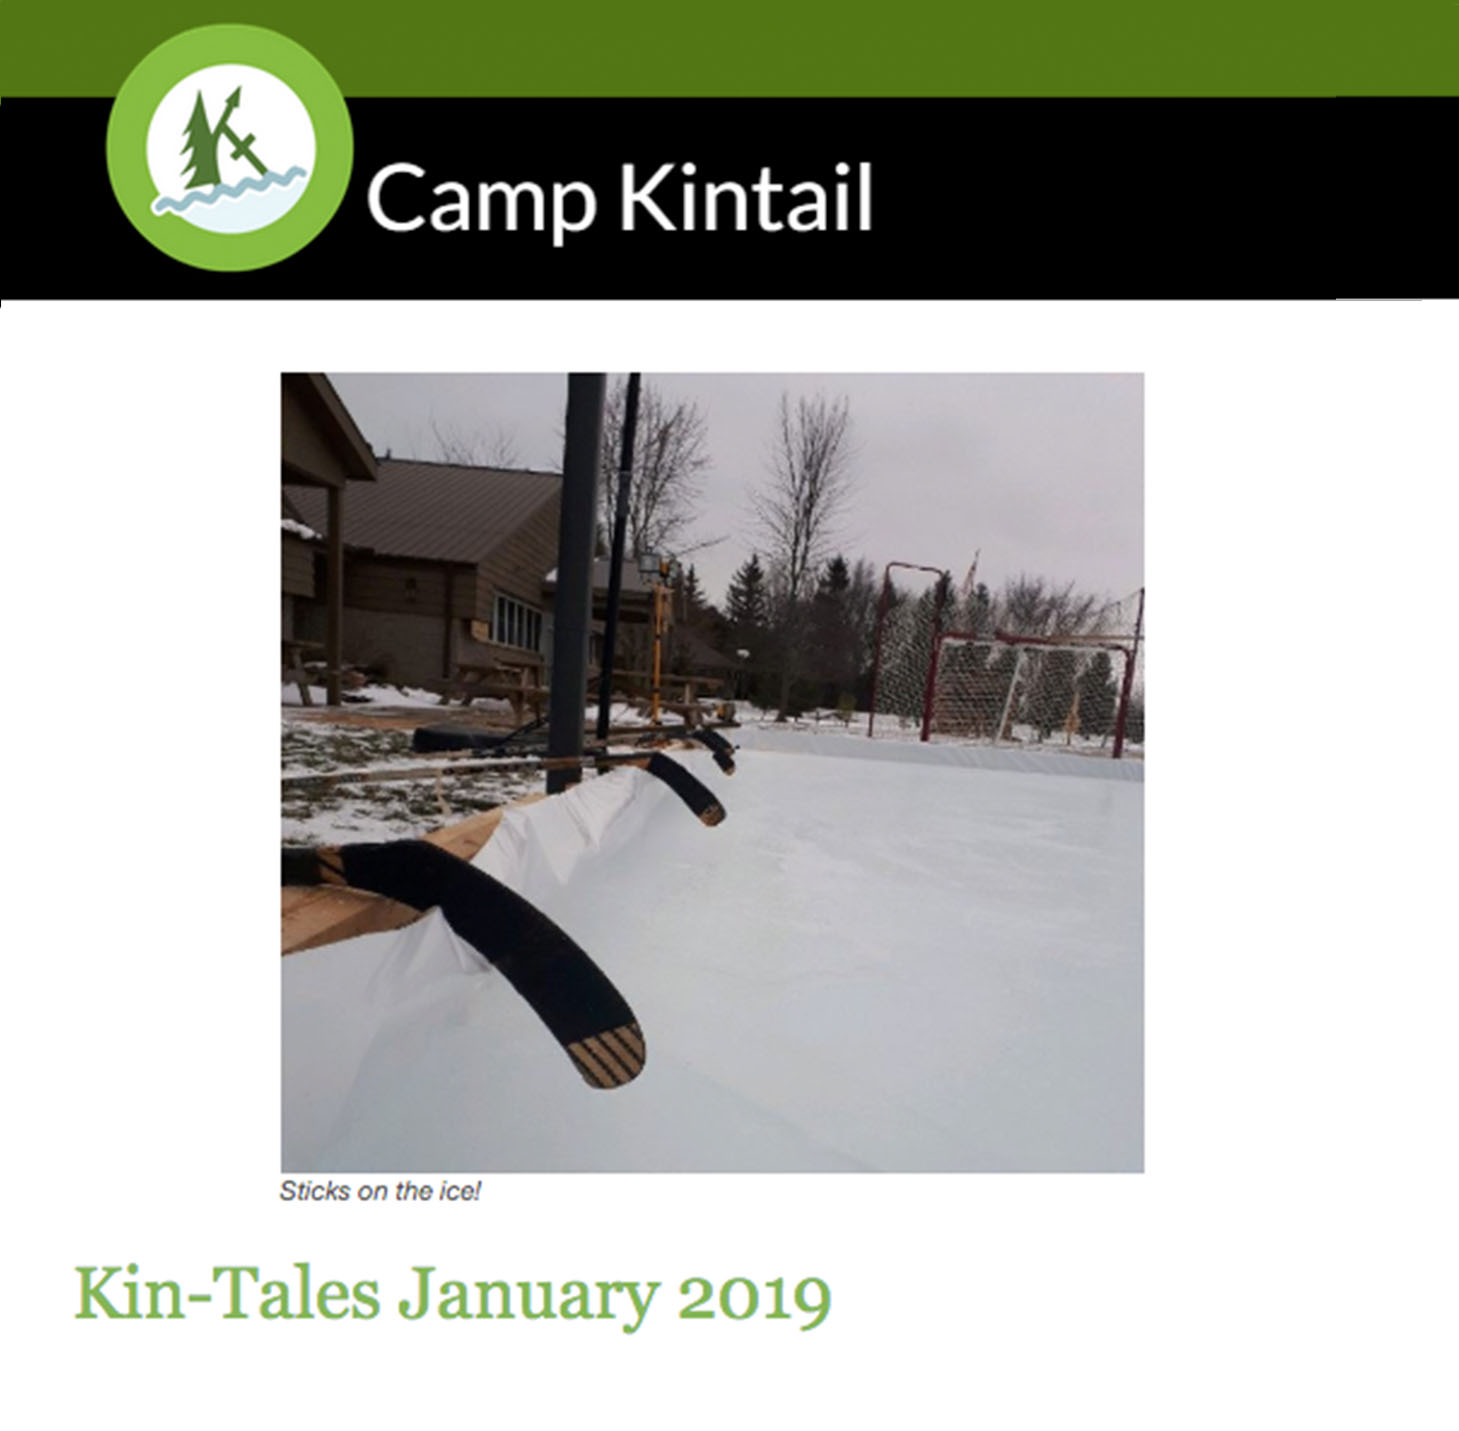 Title text: Kin-Tales January 2019. Image: Hockey sticks and outdoor ice rink.